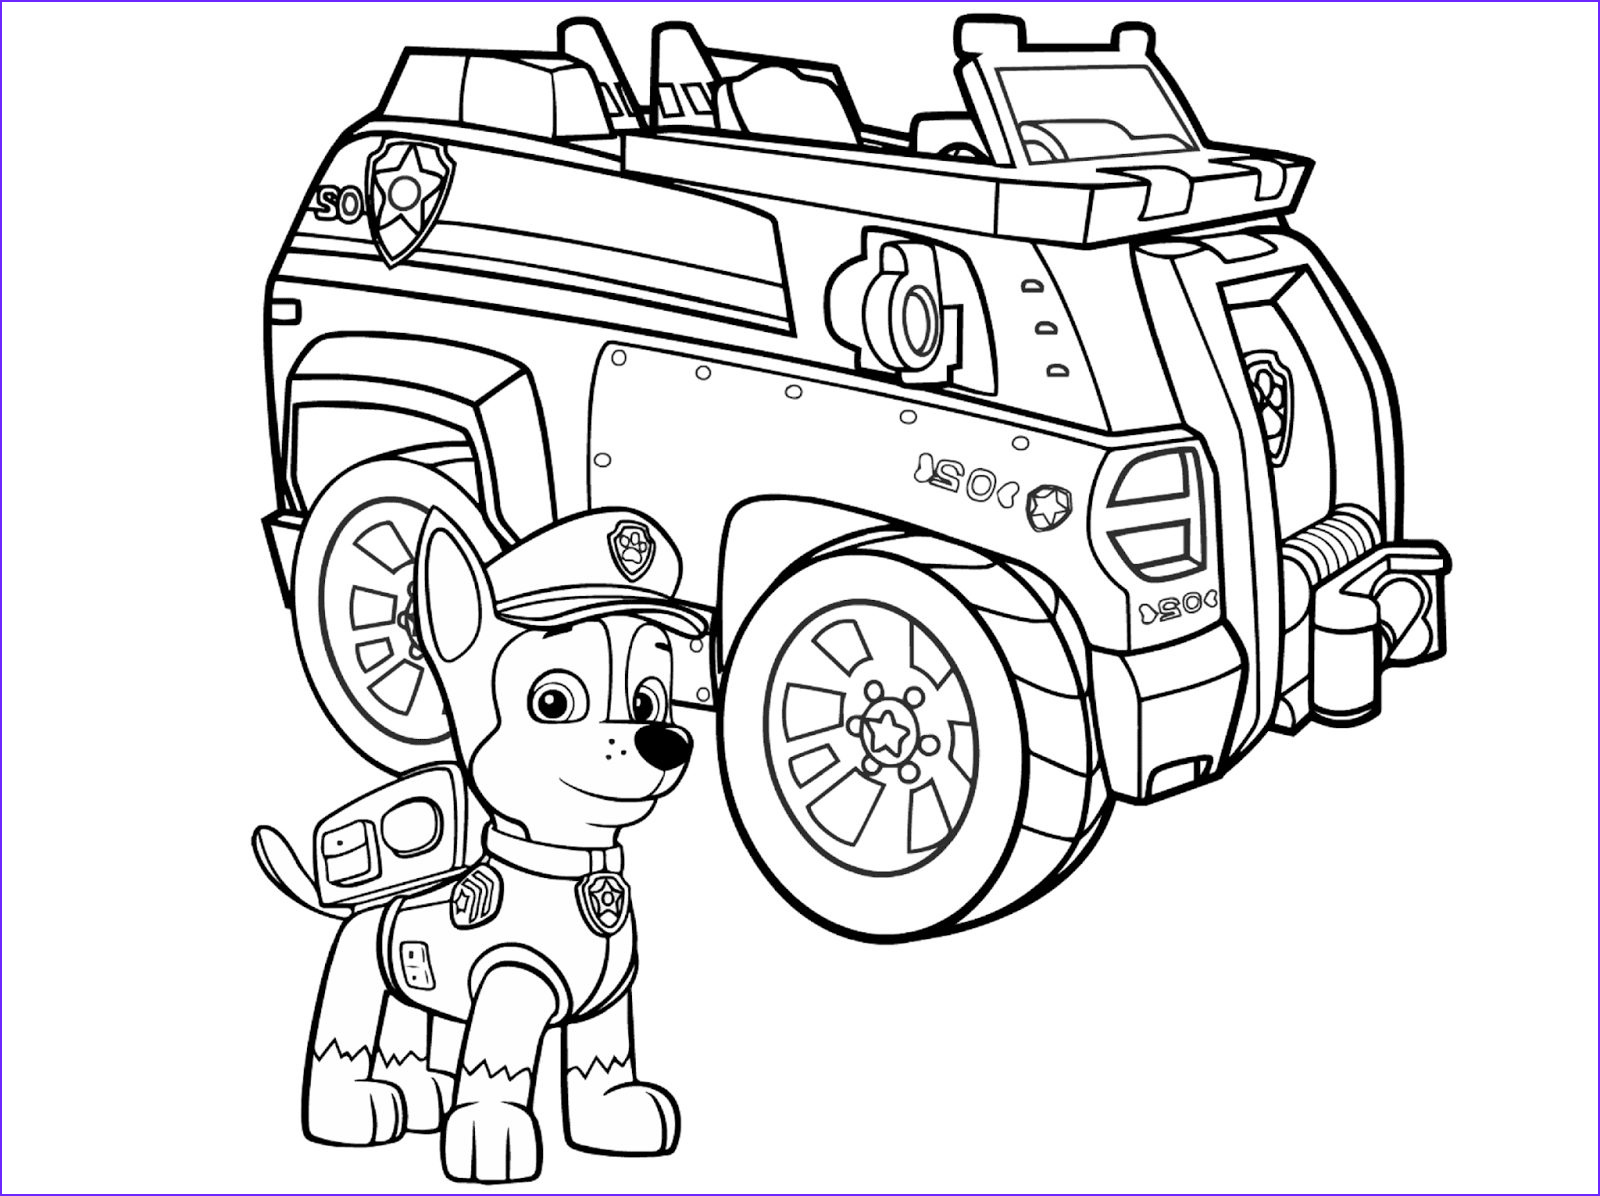 Free Paw Patrol Coloring Pages Beautiful Images Free Nick Jr Paw Patrol Coloring Pages